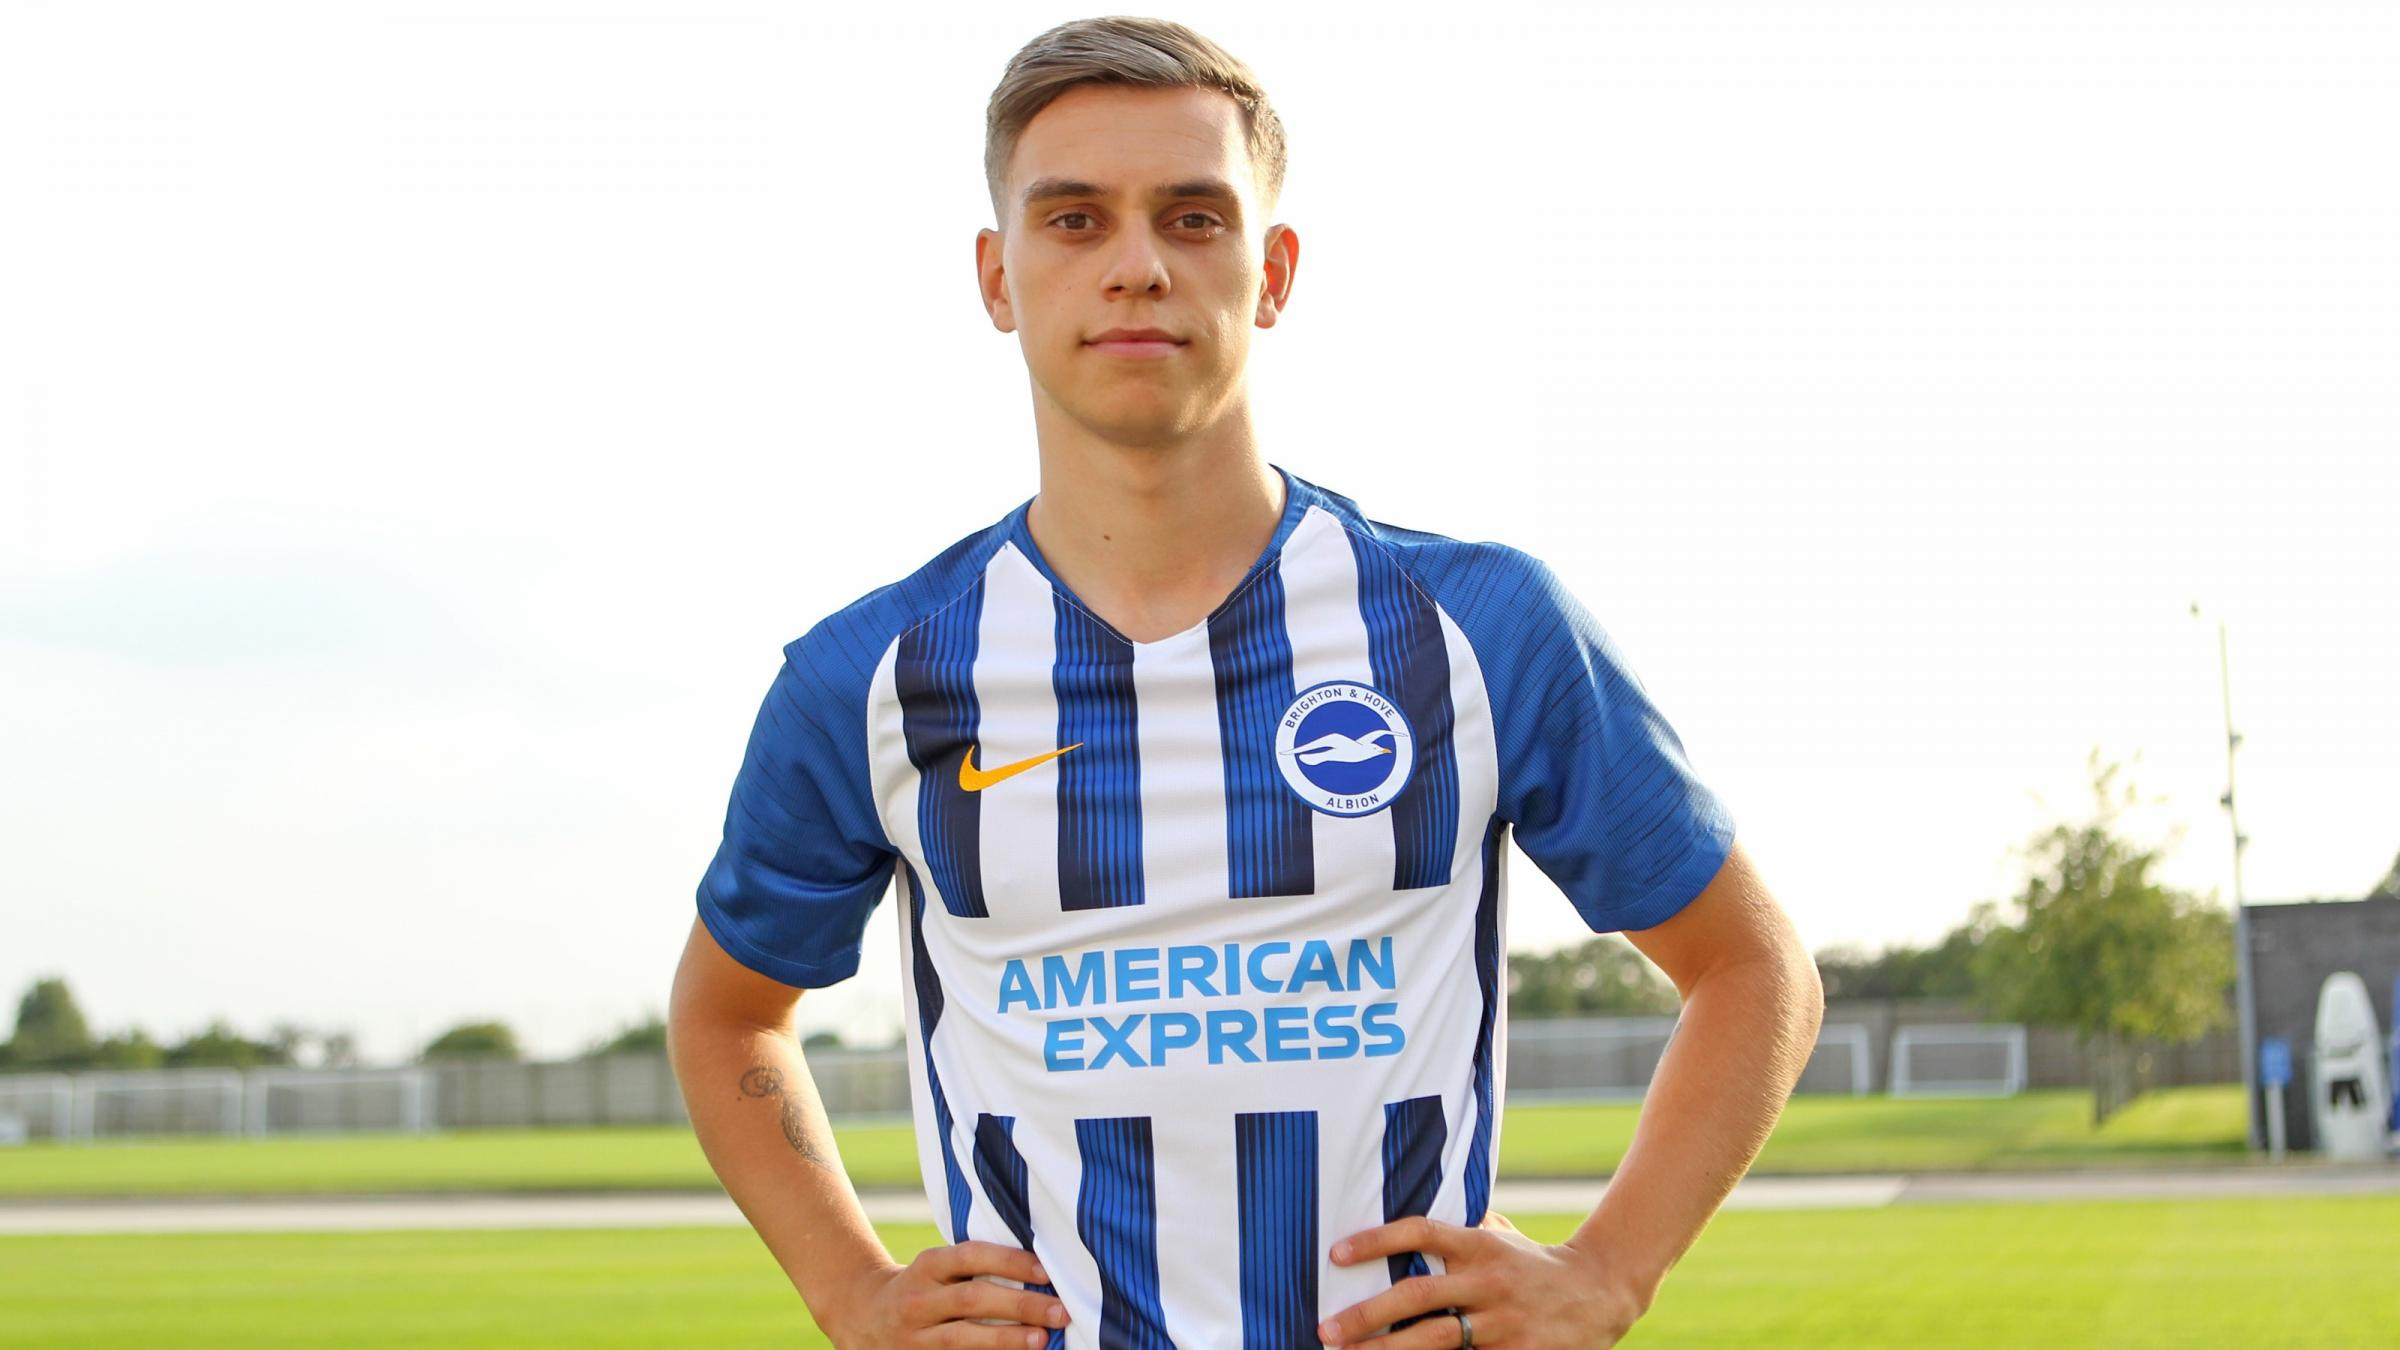 Leandro Trossard in his Brighton kit following the announcement of his transfer to the Seagulls.